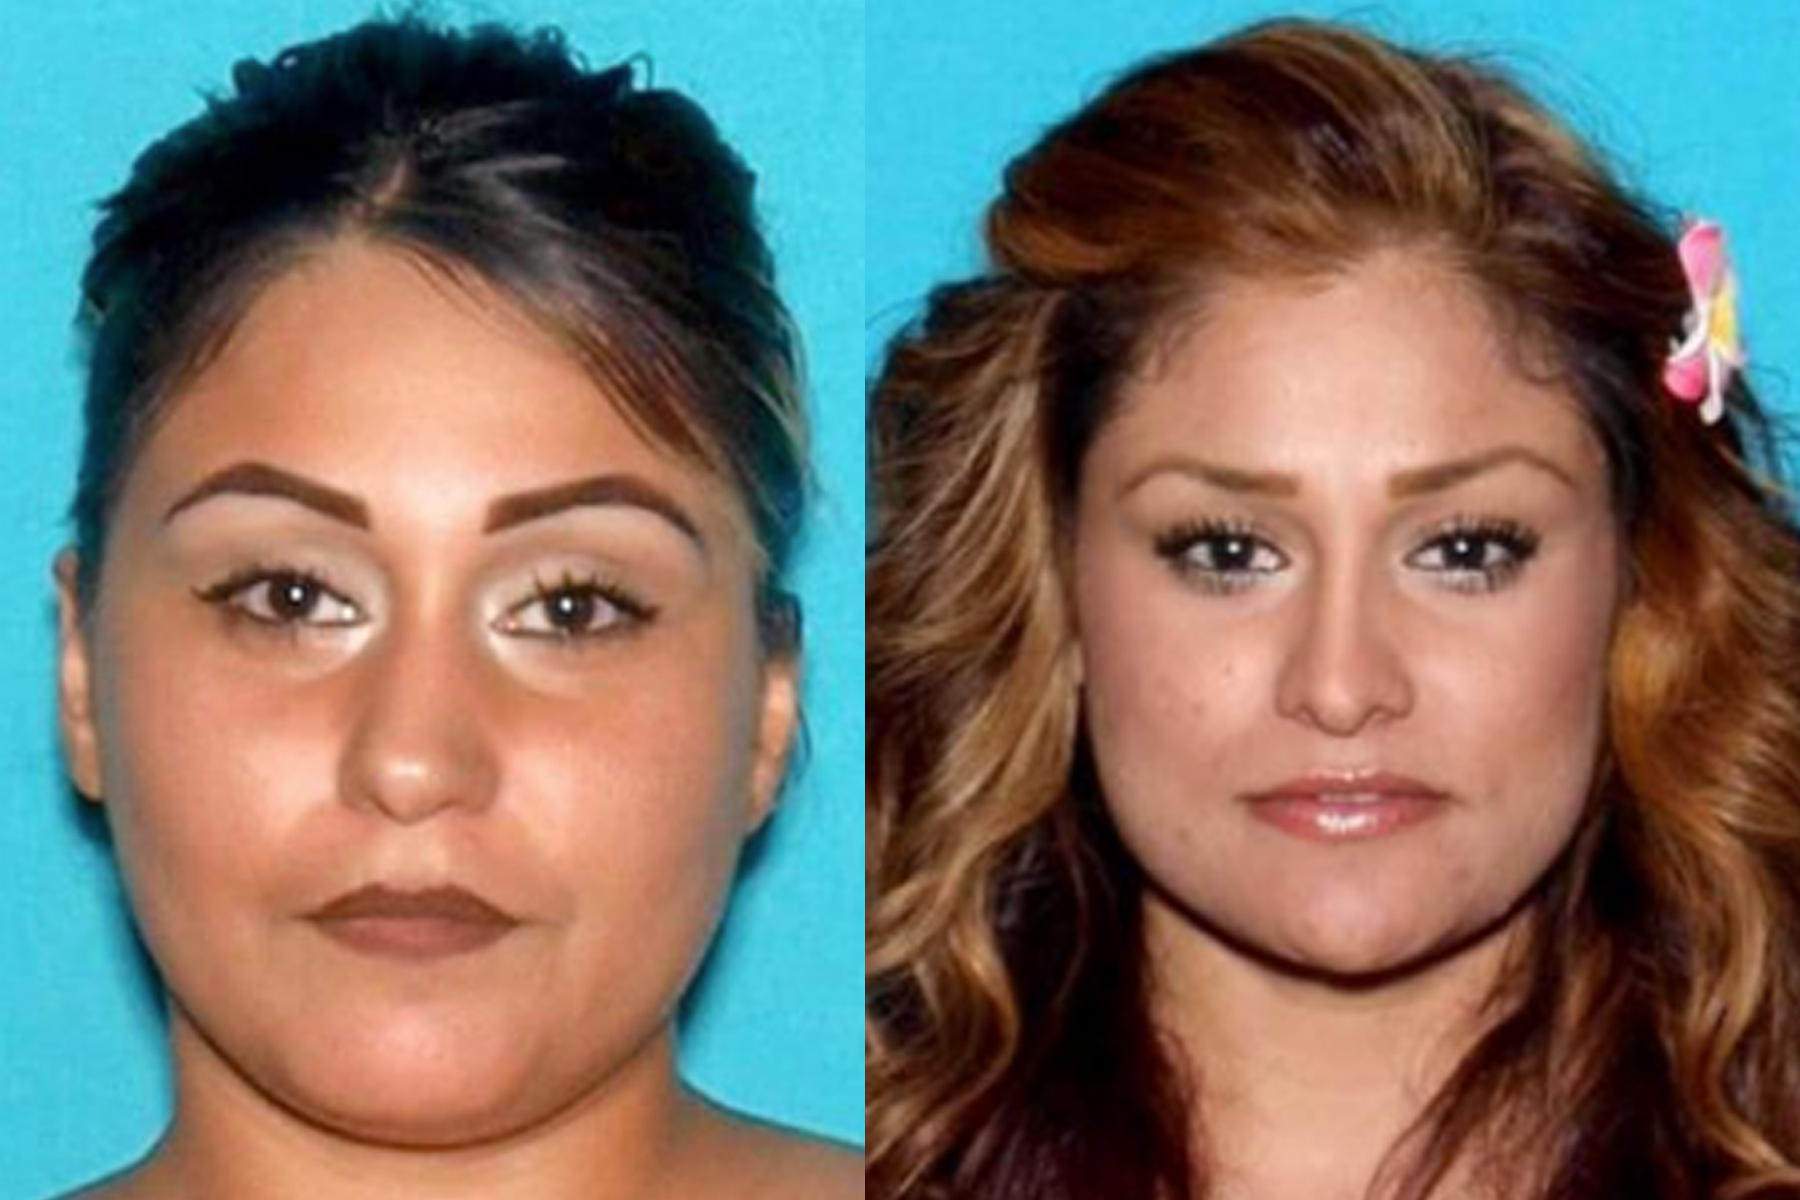 Victims Franchiskka Barrios (left) and Margaret Barrios (right). (Credit: San Bernardino Police Department)